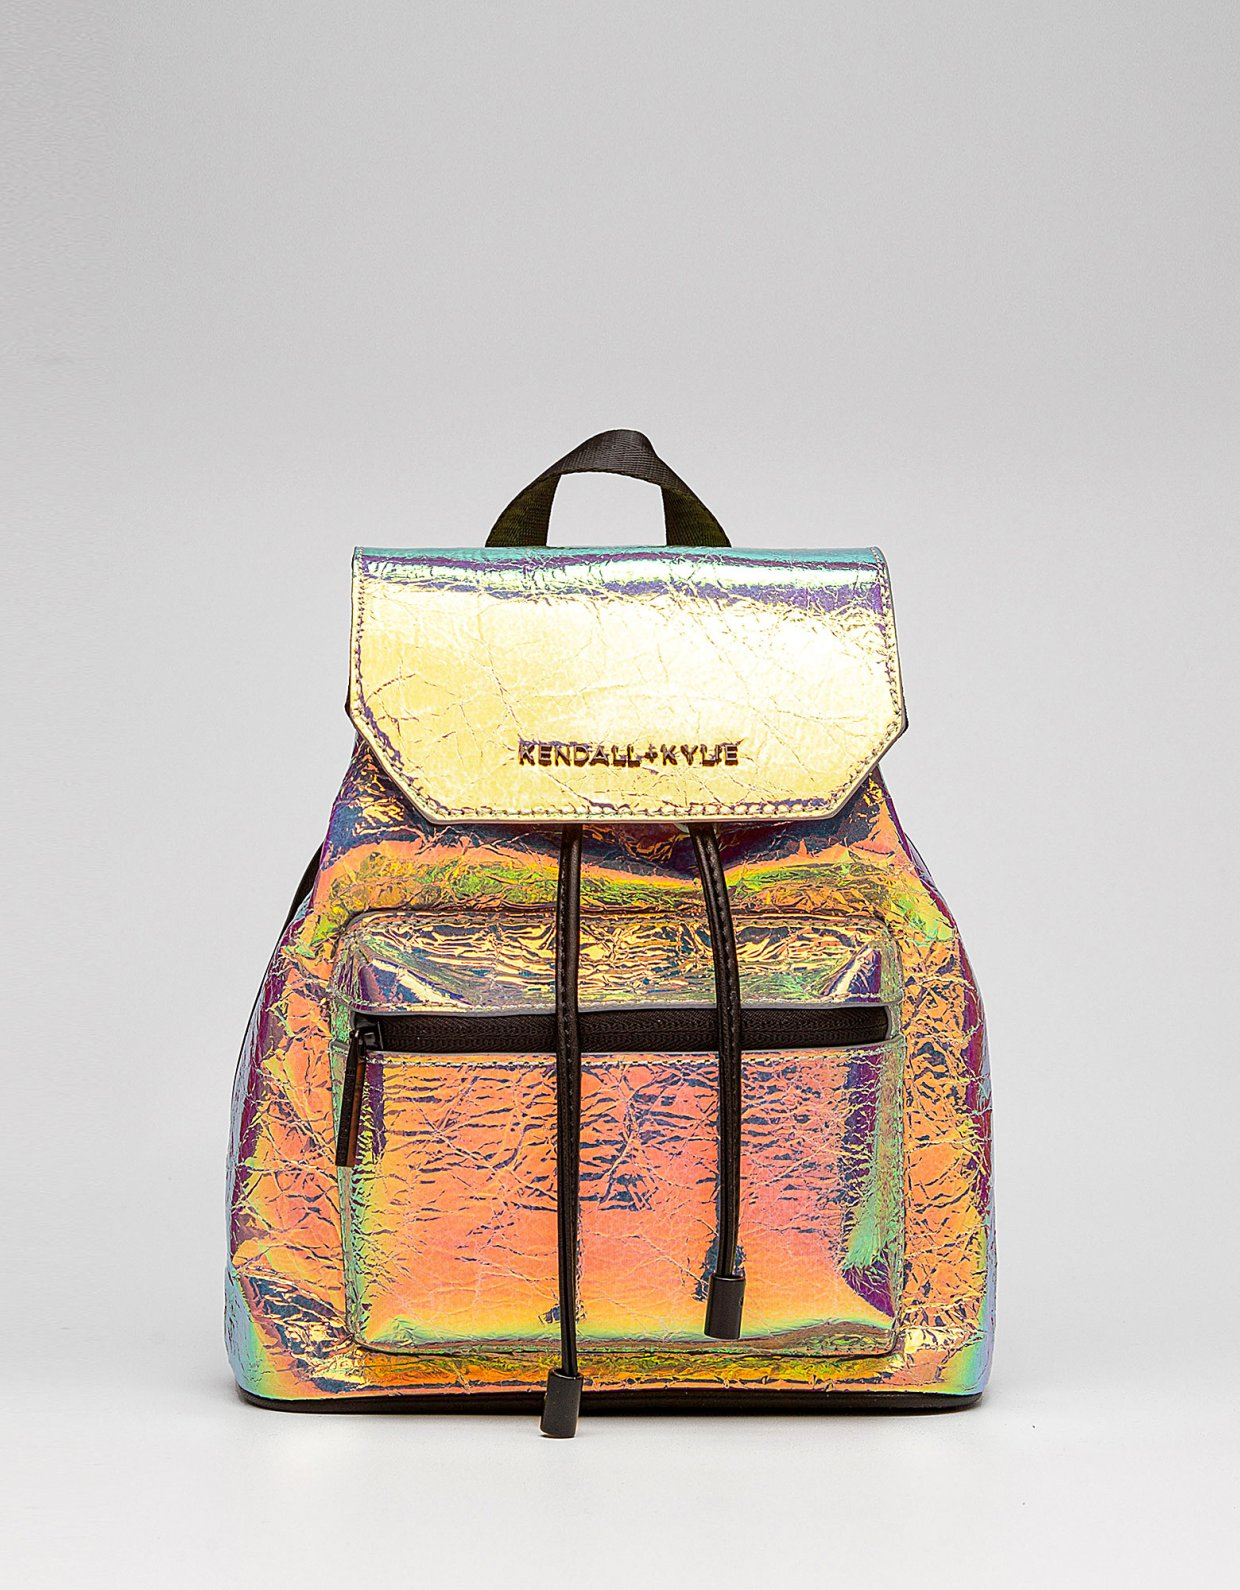 Kendall + Kylie Serena small backpack iridescent